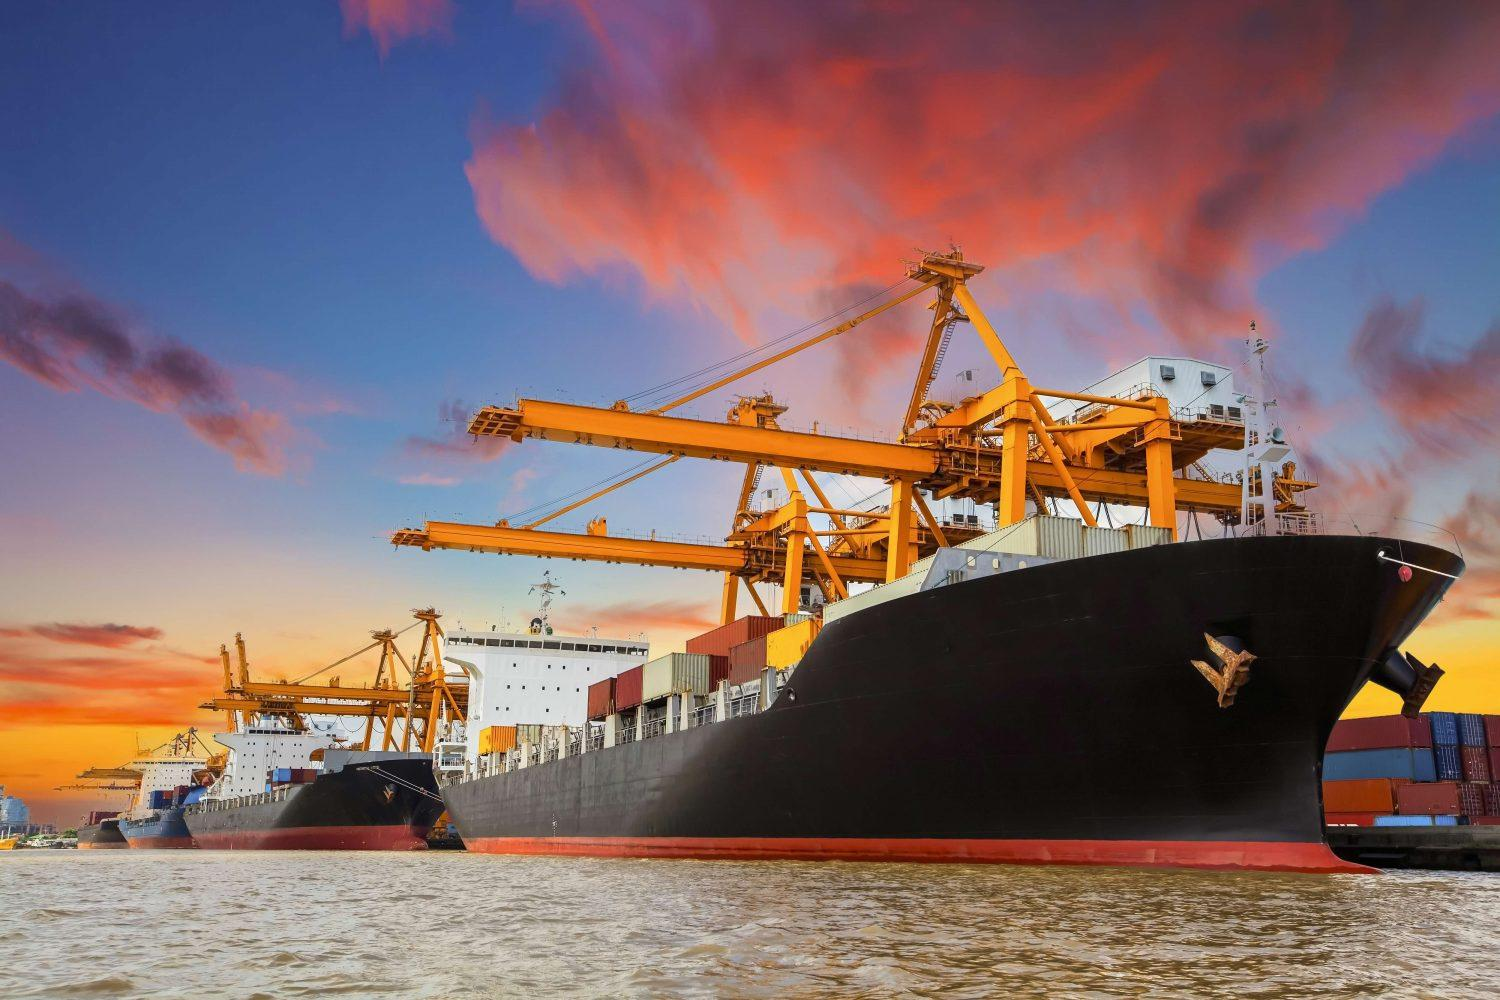 Port of Buenos Aires to Modernize Maritime System Using Blockchain - Yahoo Finance